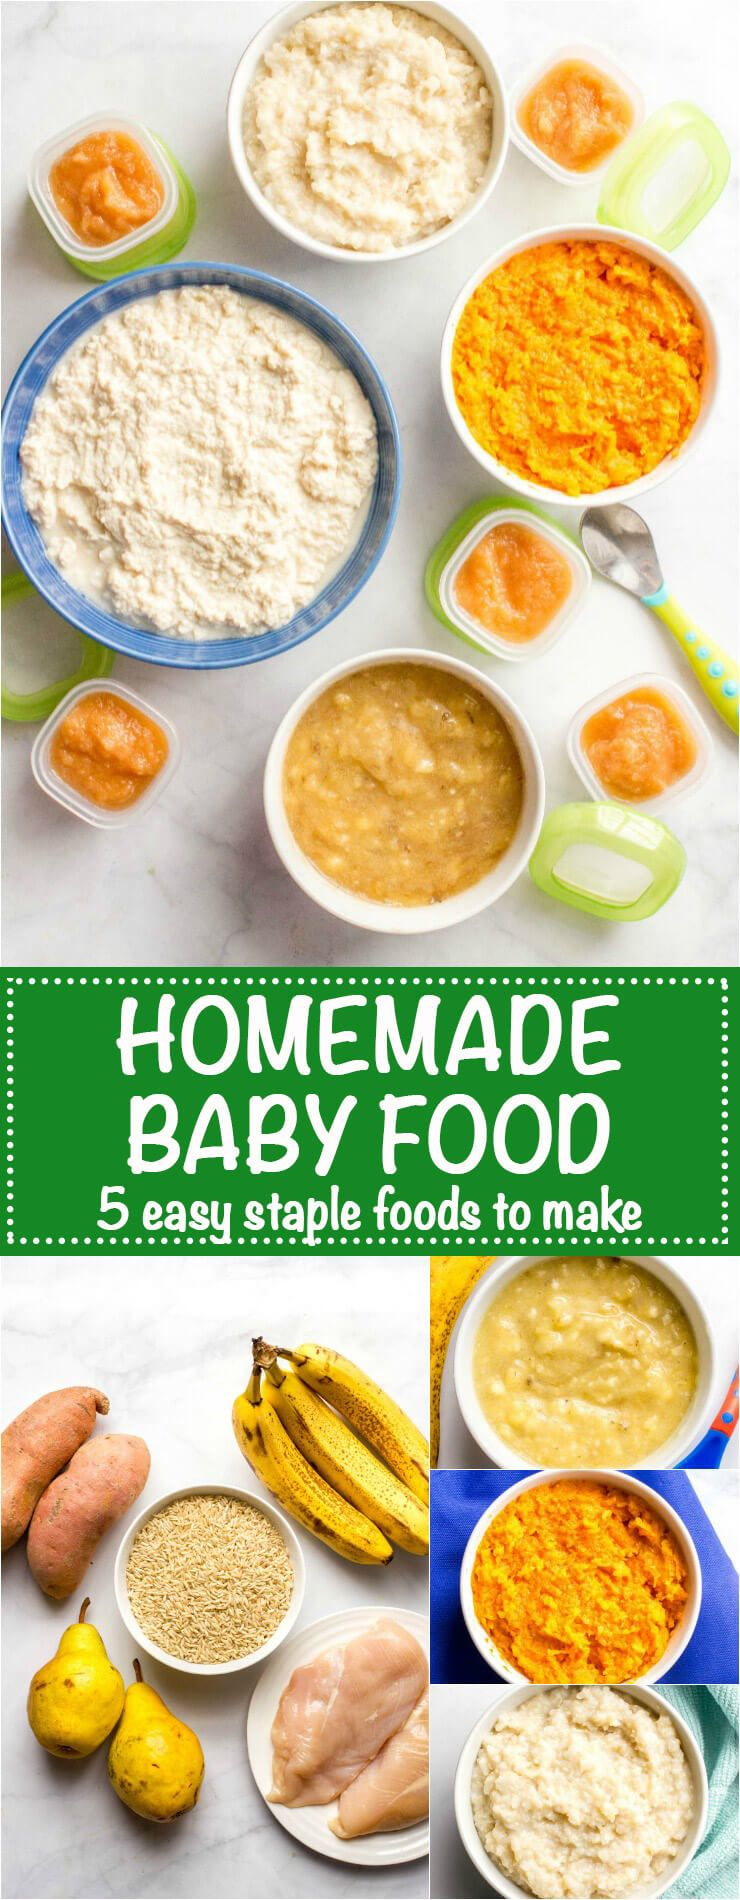 Homemade baby food: Sweet potatoes, brown rice, chicken ...